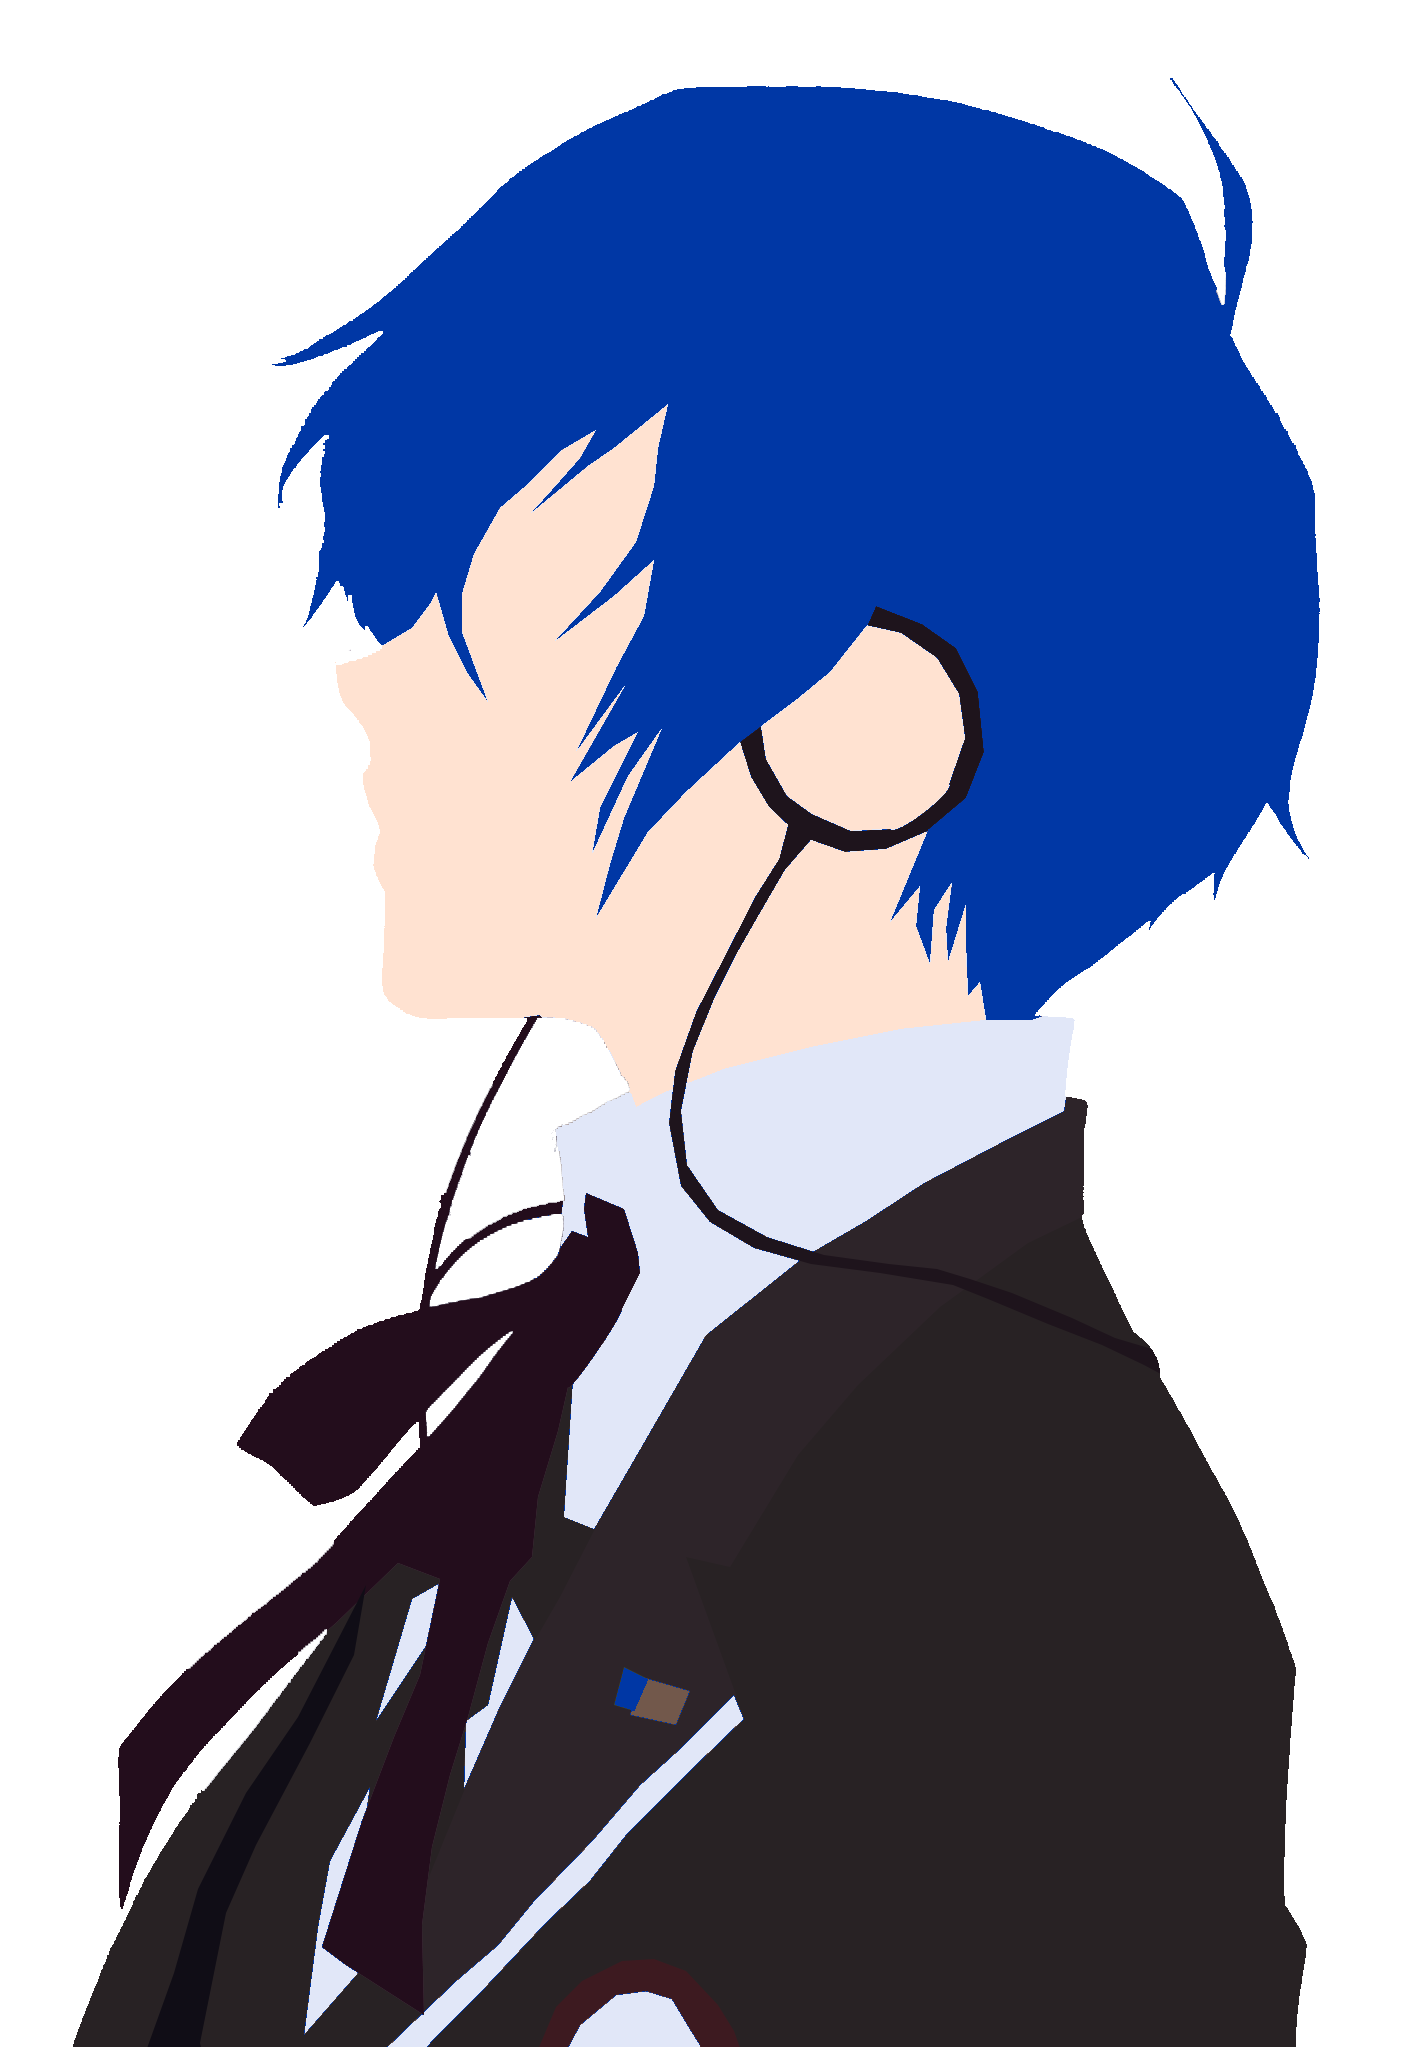 Vector style minimalist. Persona by ryouinferno on